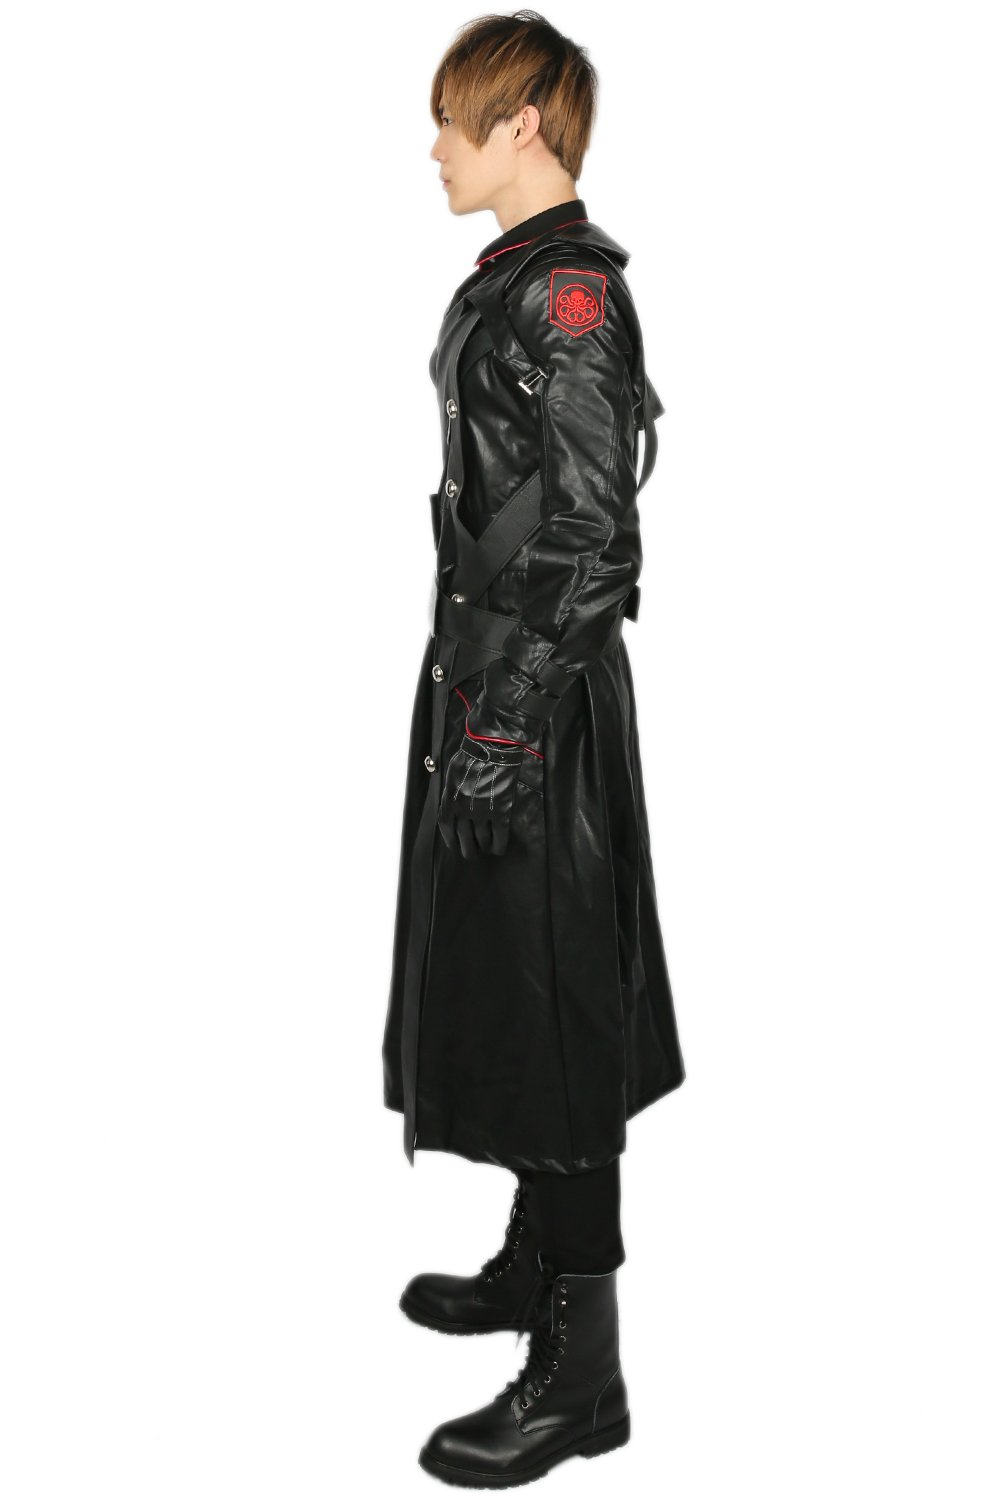 Adult Red Skull Cosplay Costume Outfit Suit for Halloween XL by xcostume (Image #3)